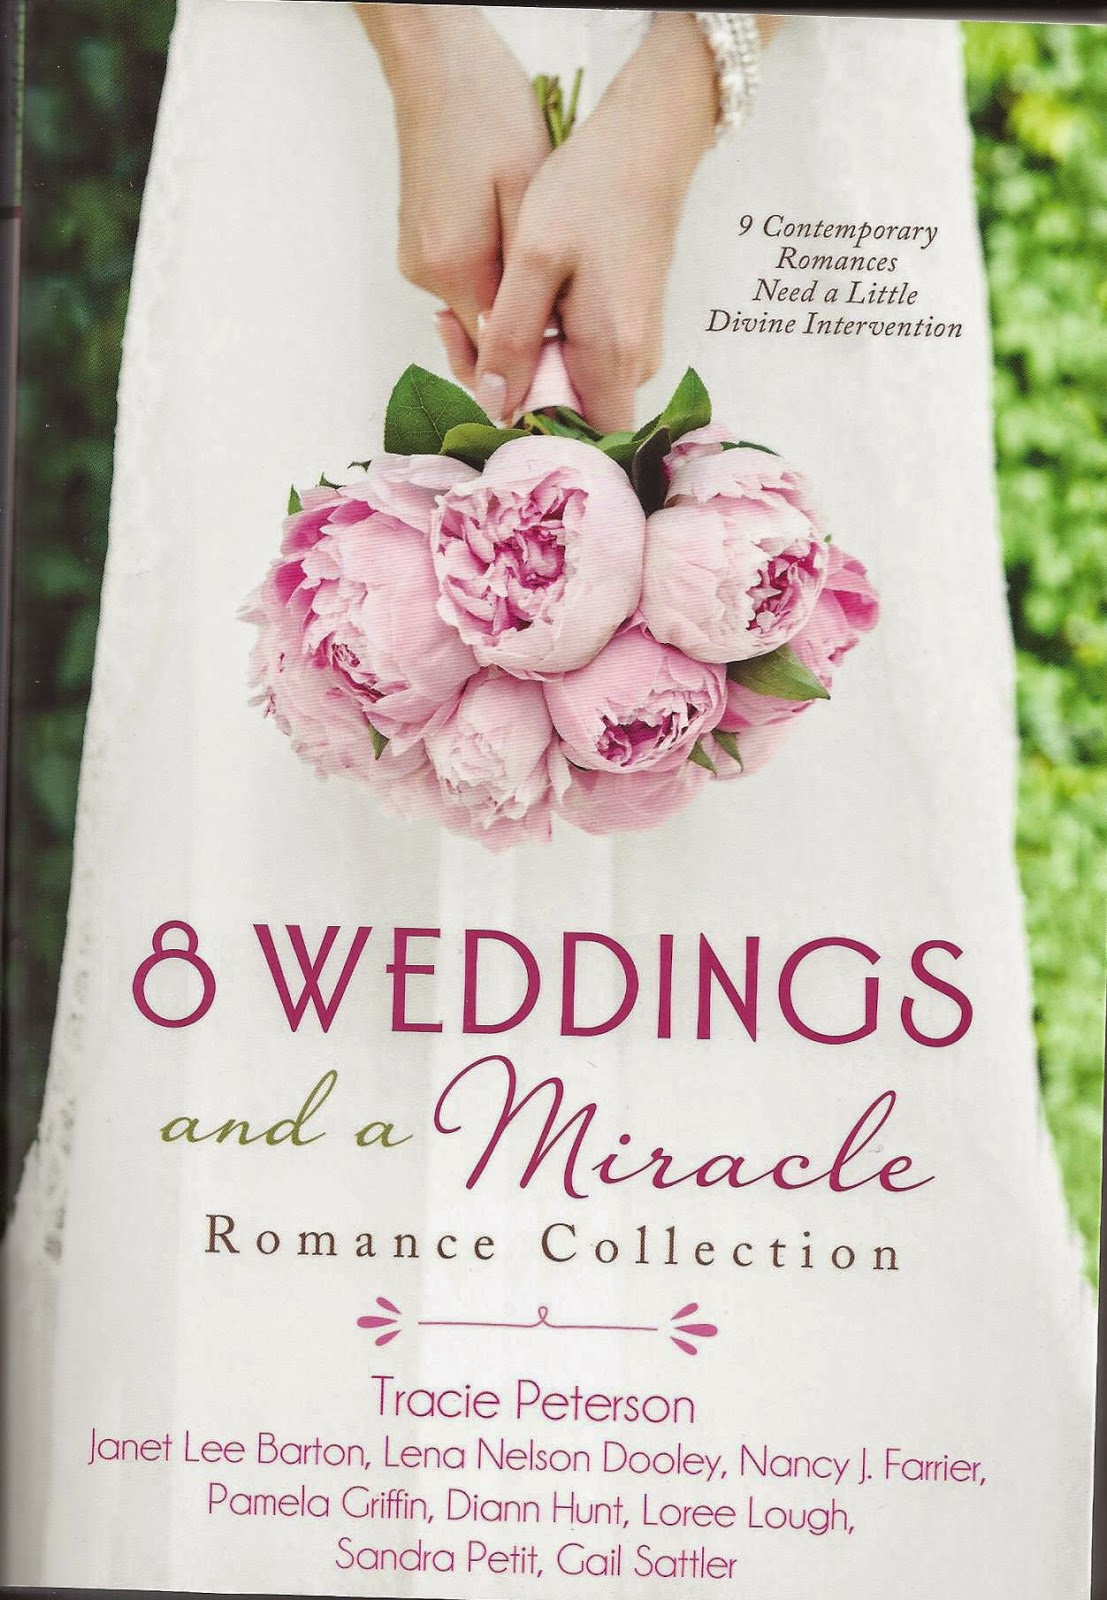 http://www.amazon.com/Weddings-Miracle-Romance-Collection-Contemporary-ebook/dp/B00TL5WZWQ/ref=tmm_kin_swatch_0?_encoding=UTF8&sr=&qid=